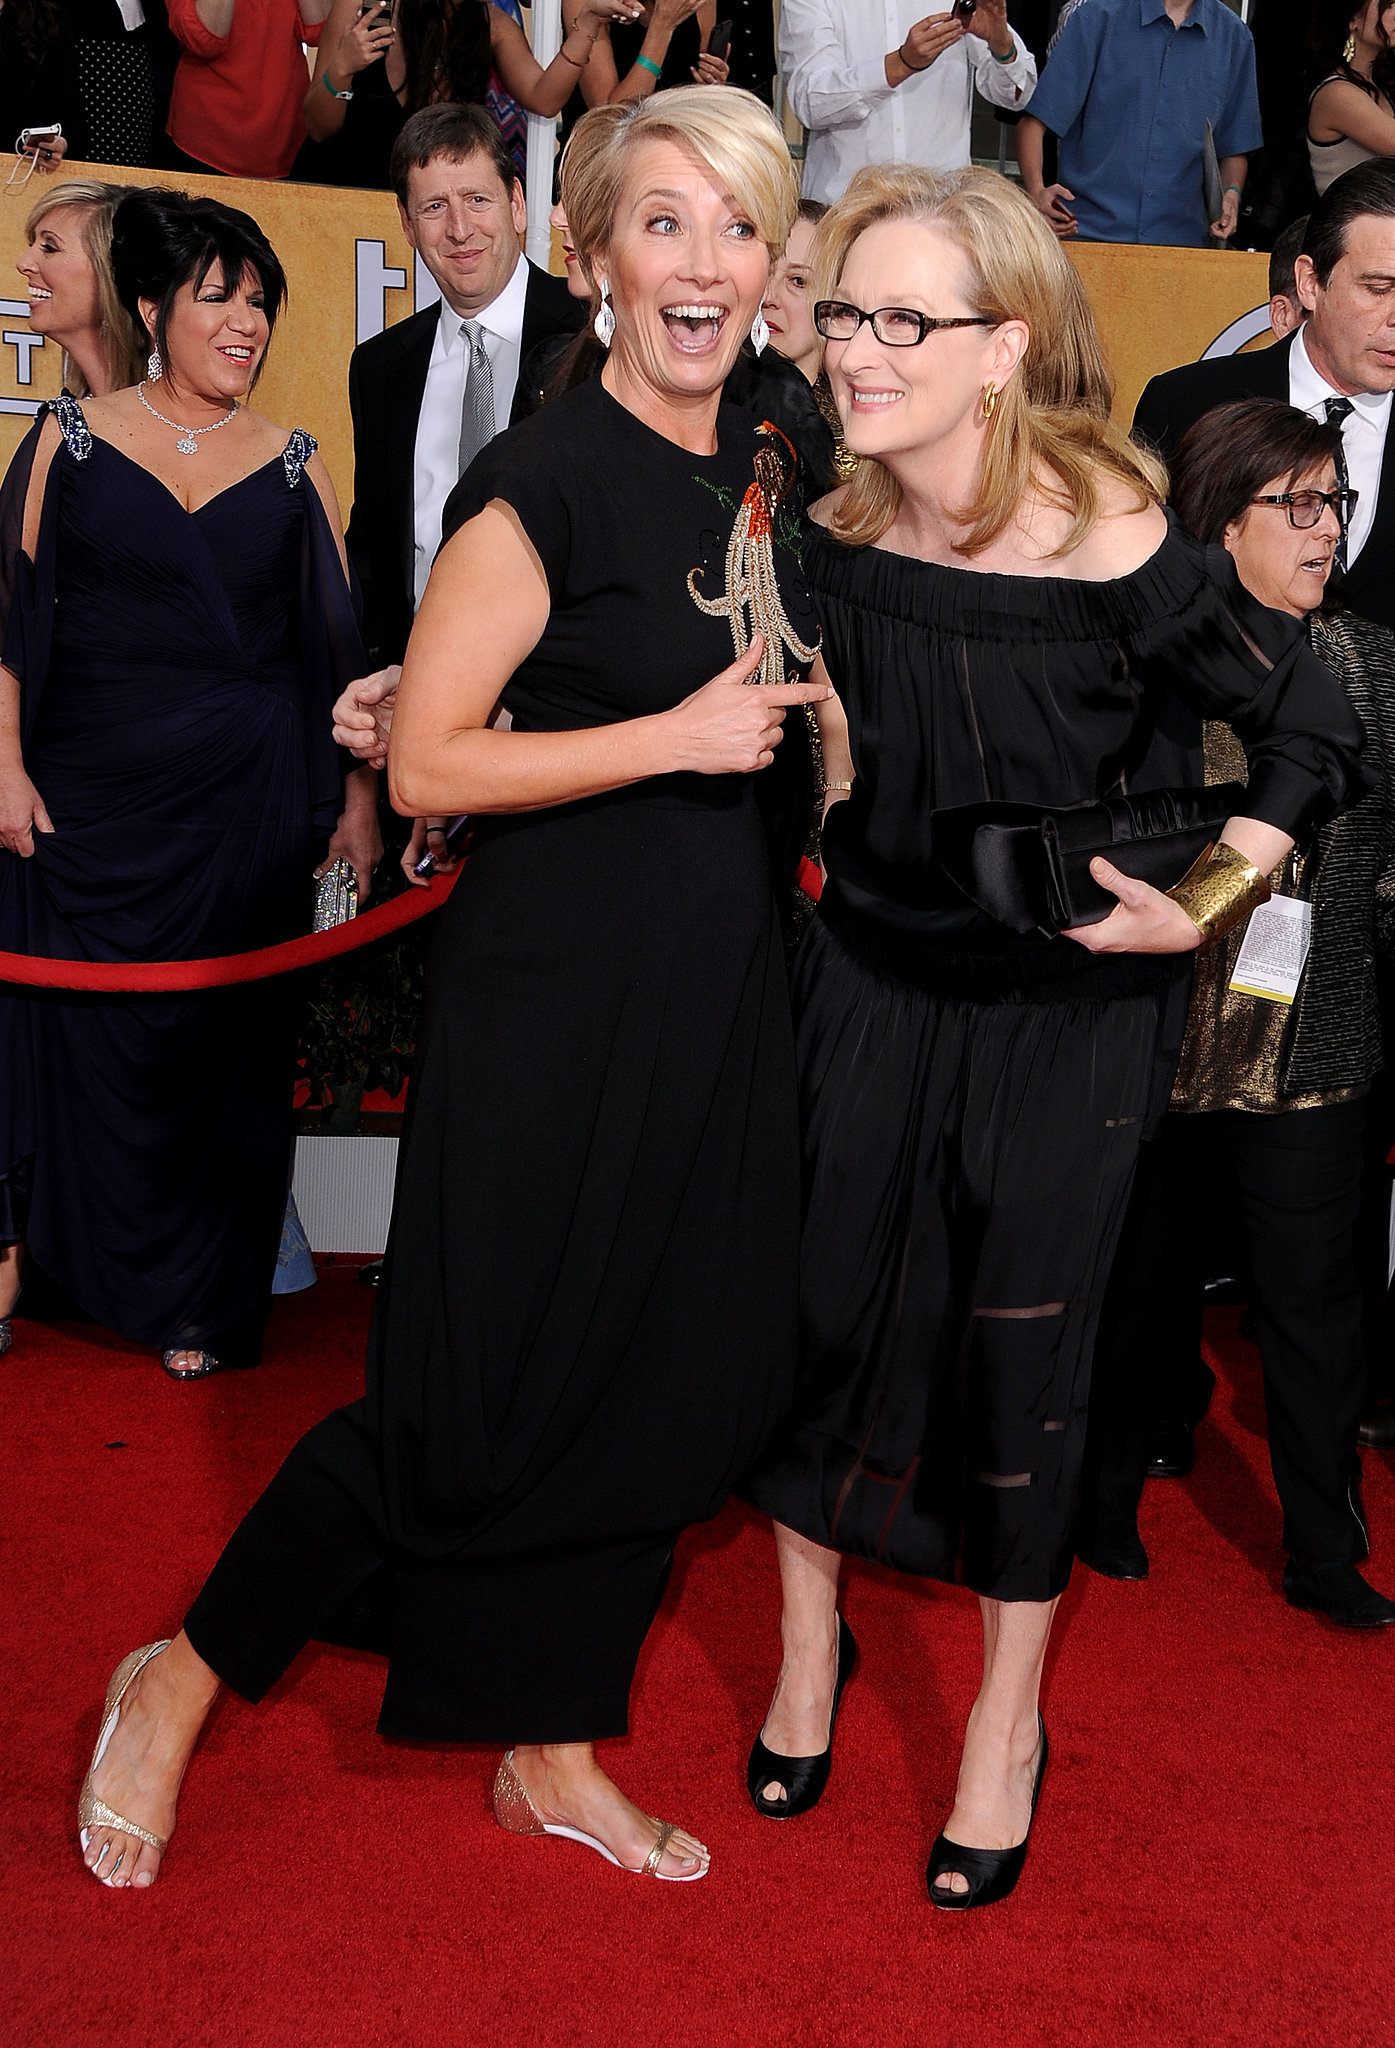 Emma Thompson and Meryl Streep shared a silly moment on the SAG Awards red carpet.